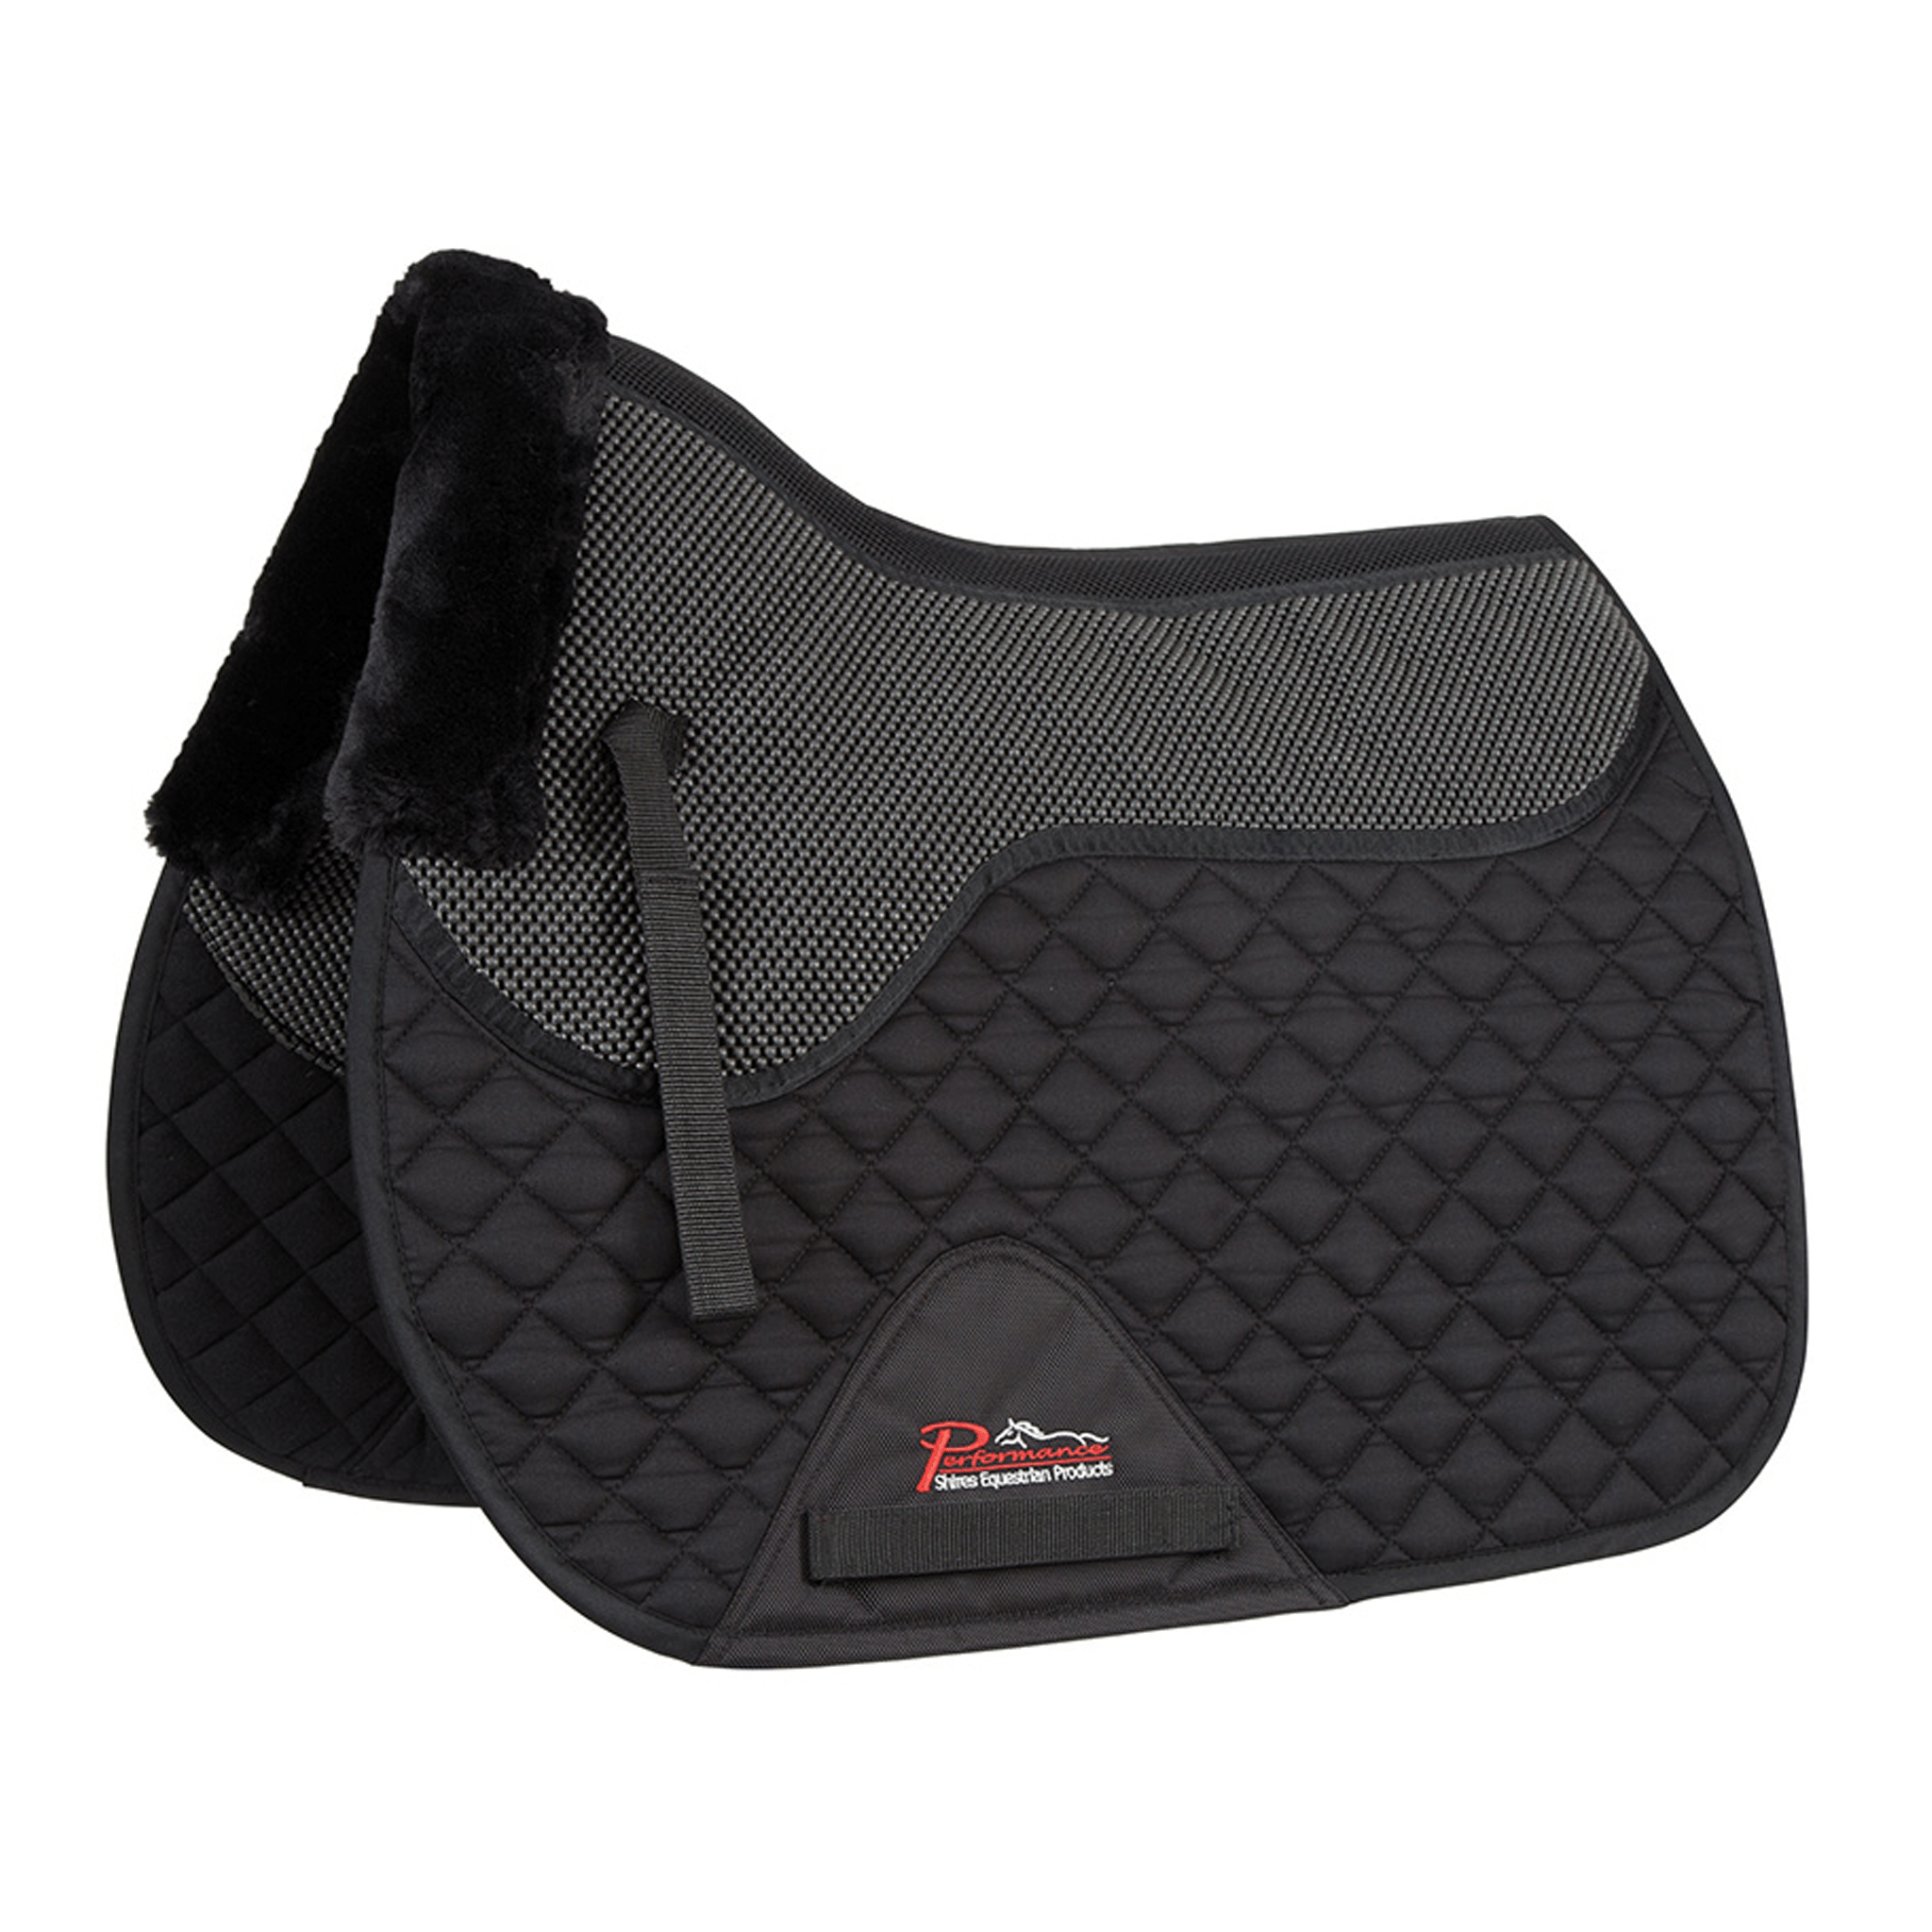 Shires Performance SupaFleece Airflow Anti-Slip Saddle Cloth 279